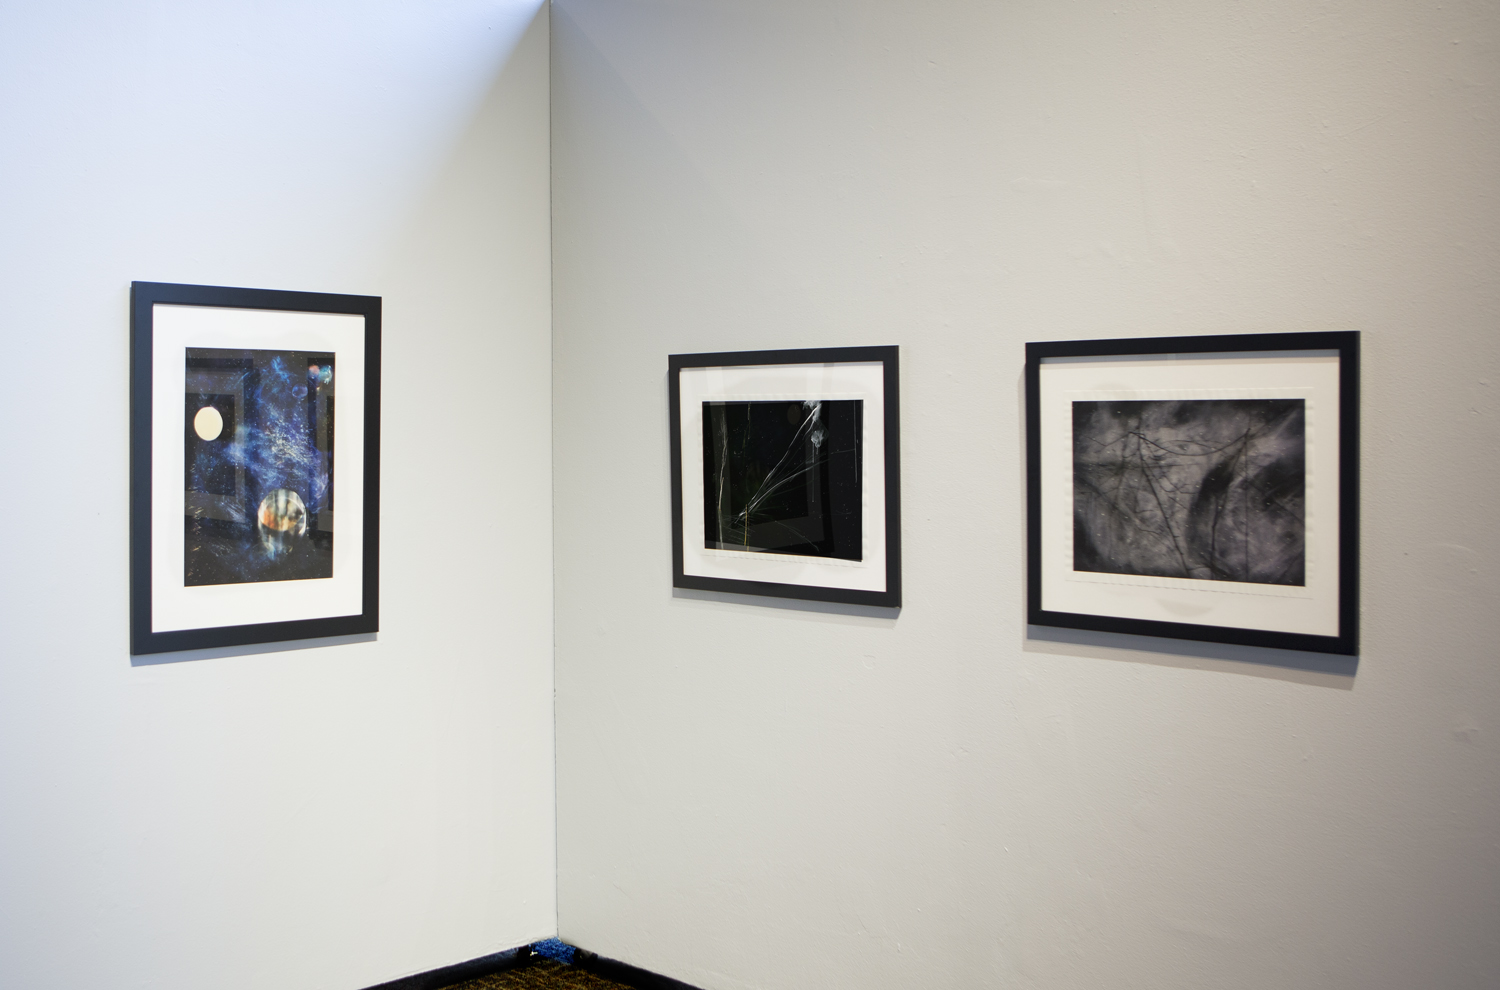 Marcy Palmer: Unearthing Series, Brazos Gallery, Richland College